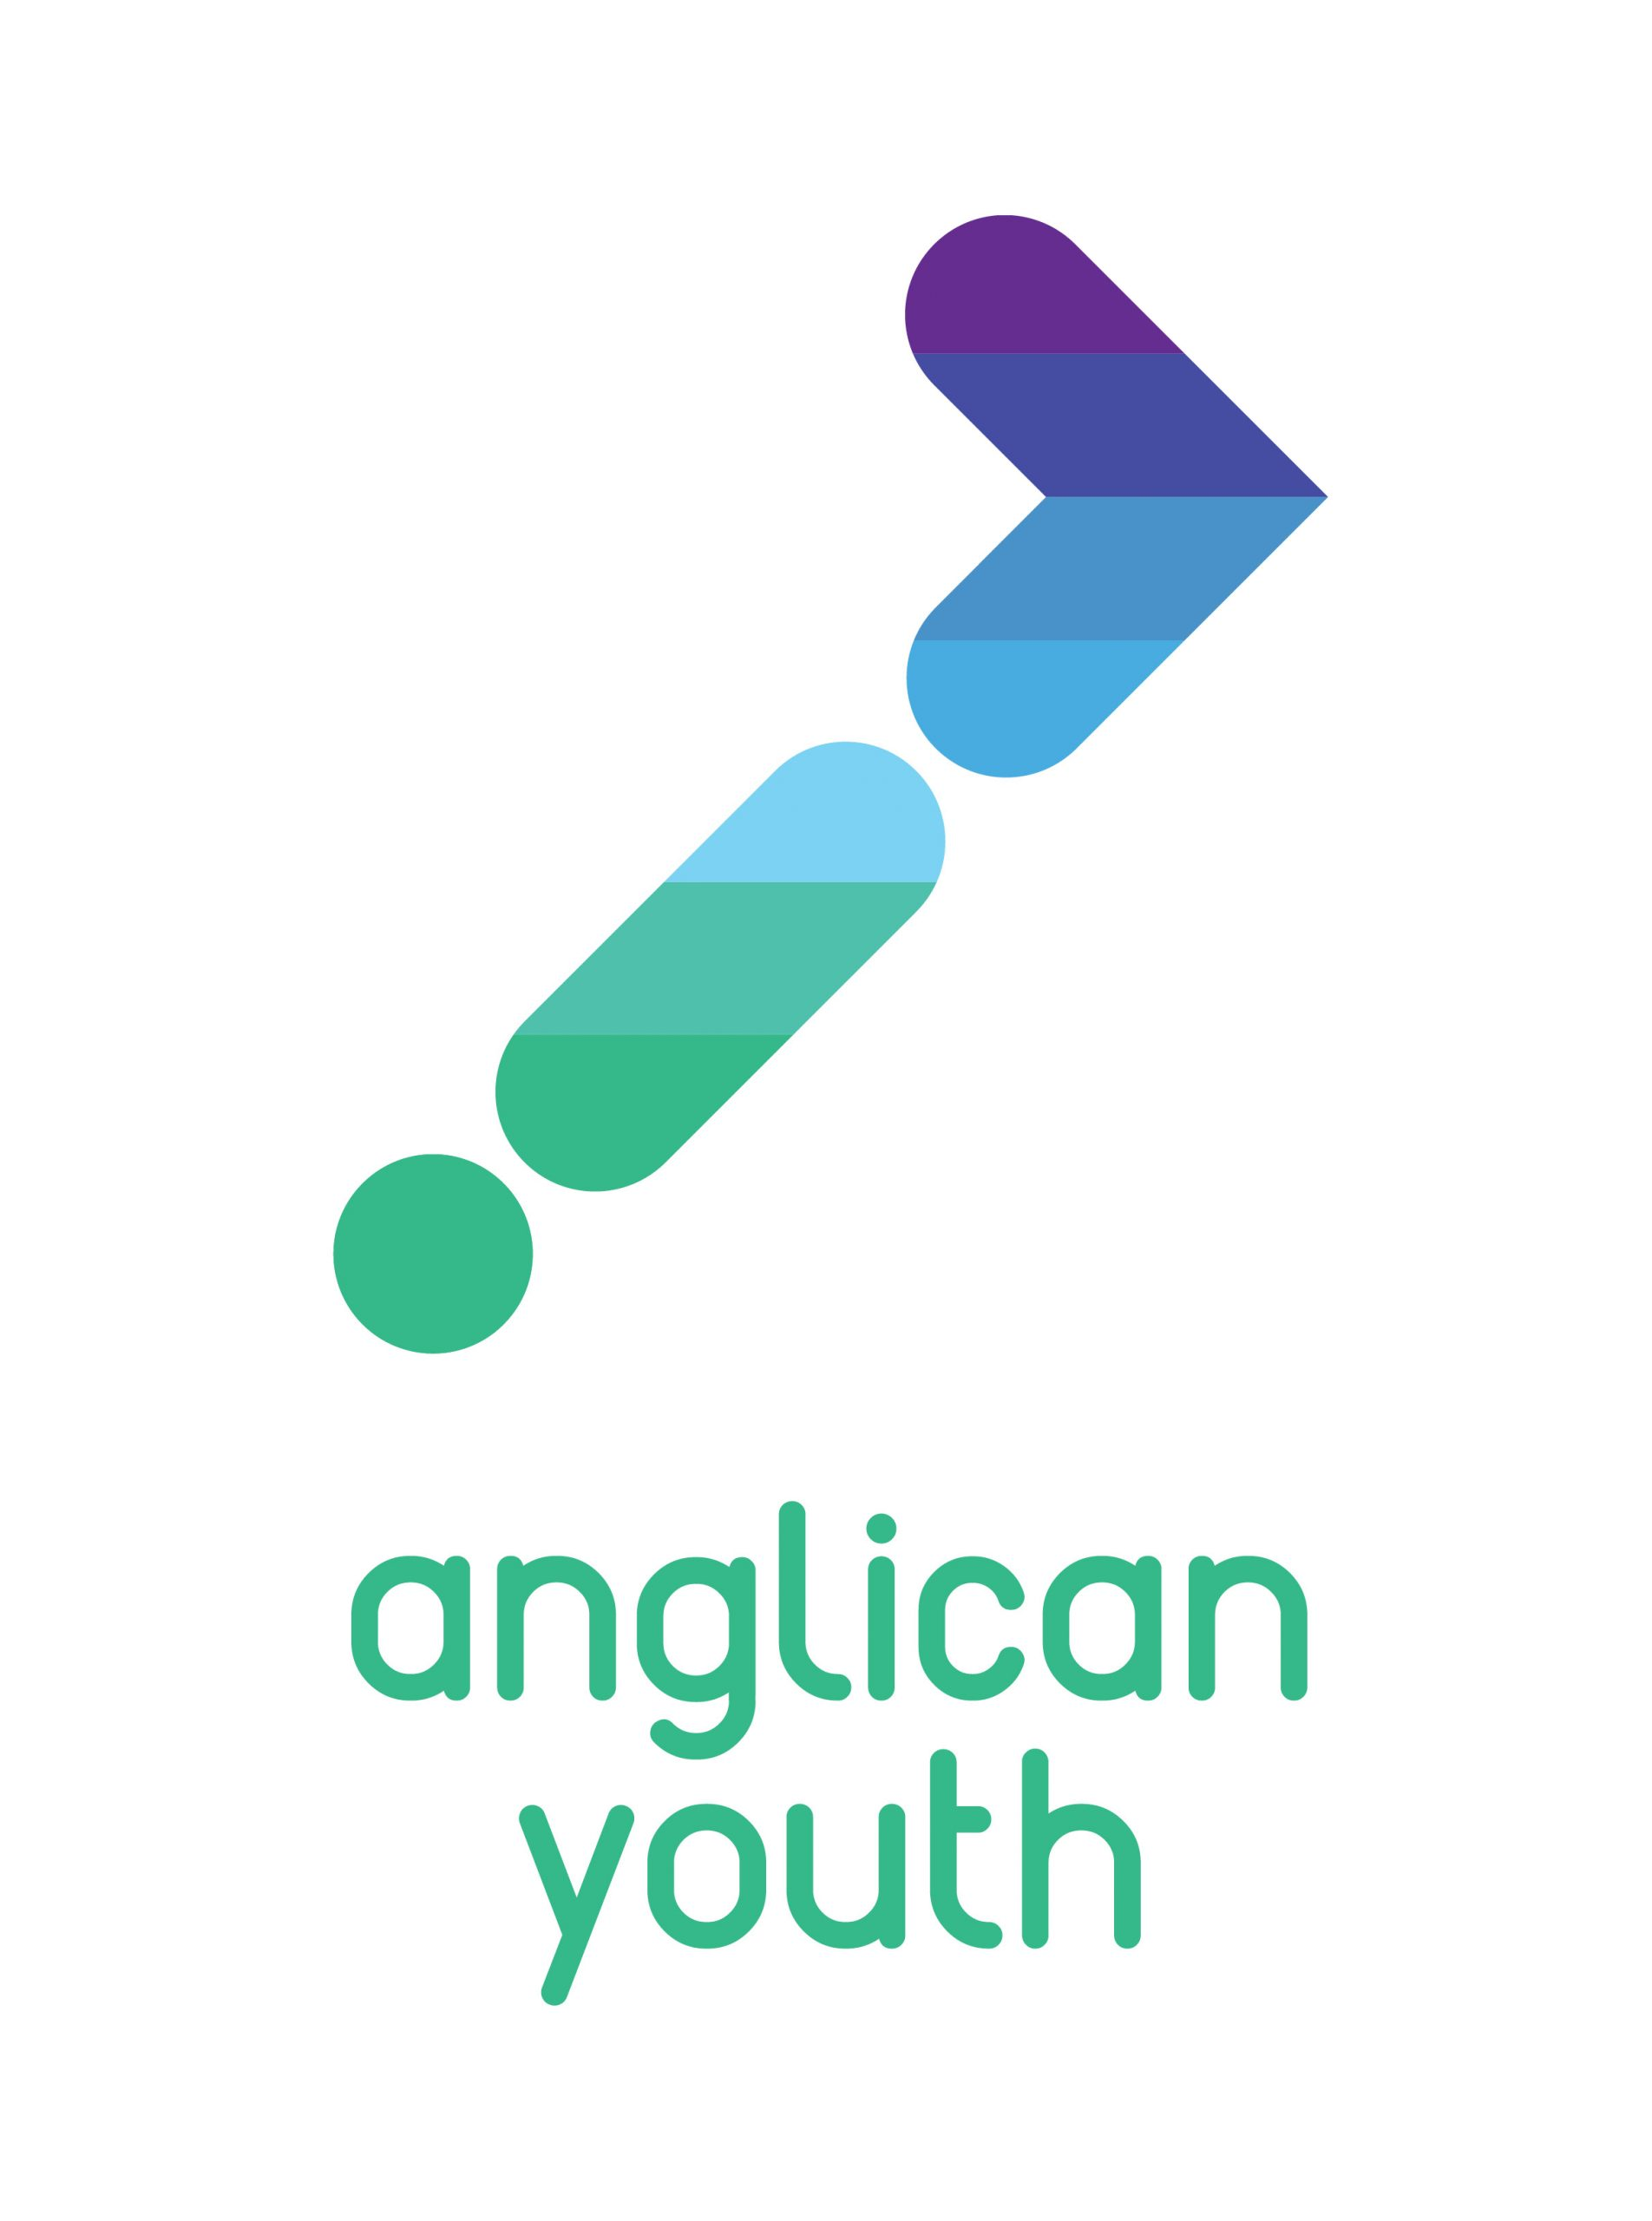 Anglican Youth